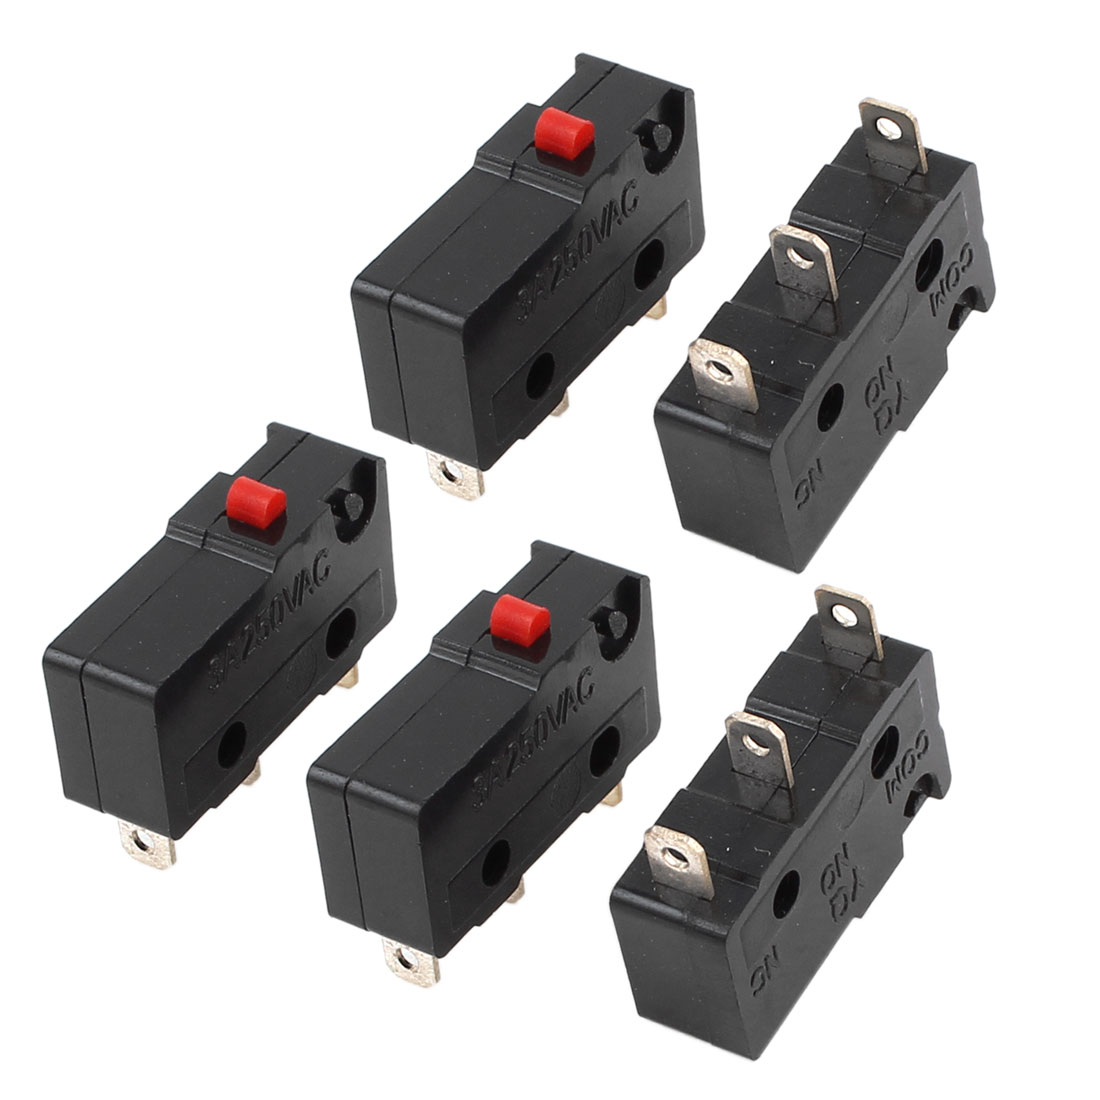 5Pcs SPDT 1NO 1NC 3 Terminal Momentary Control Black Plastic Micro Limit Switch AC250V 3A